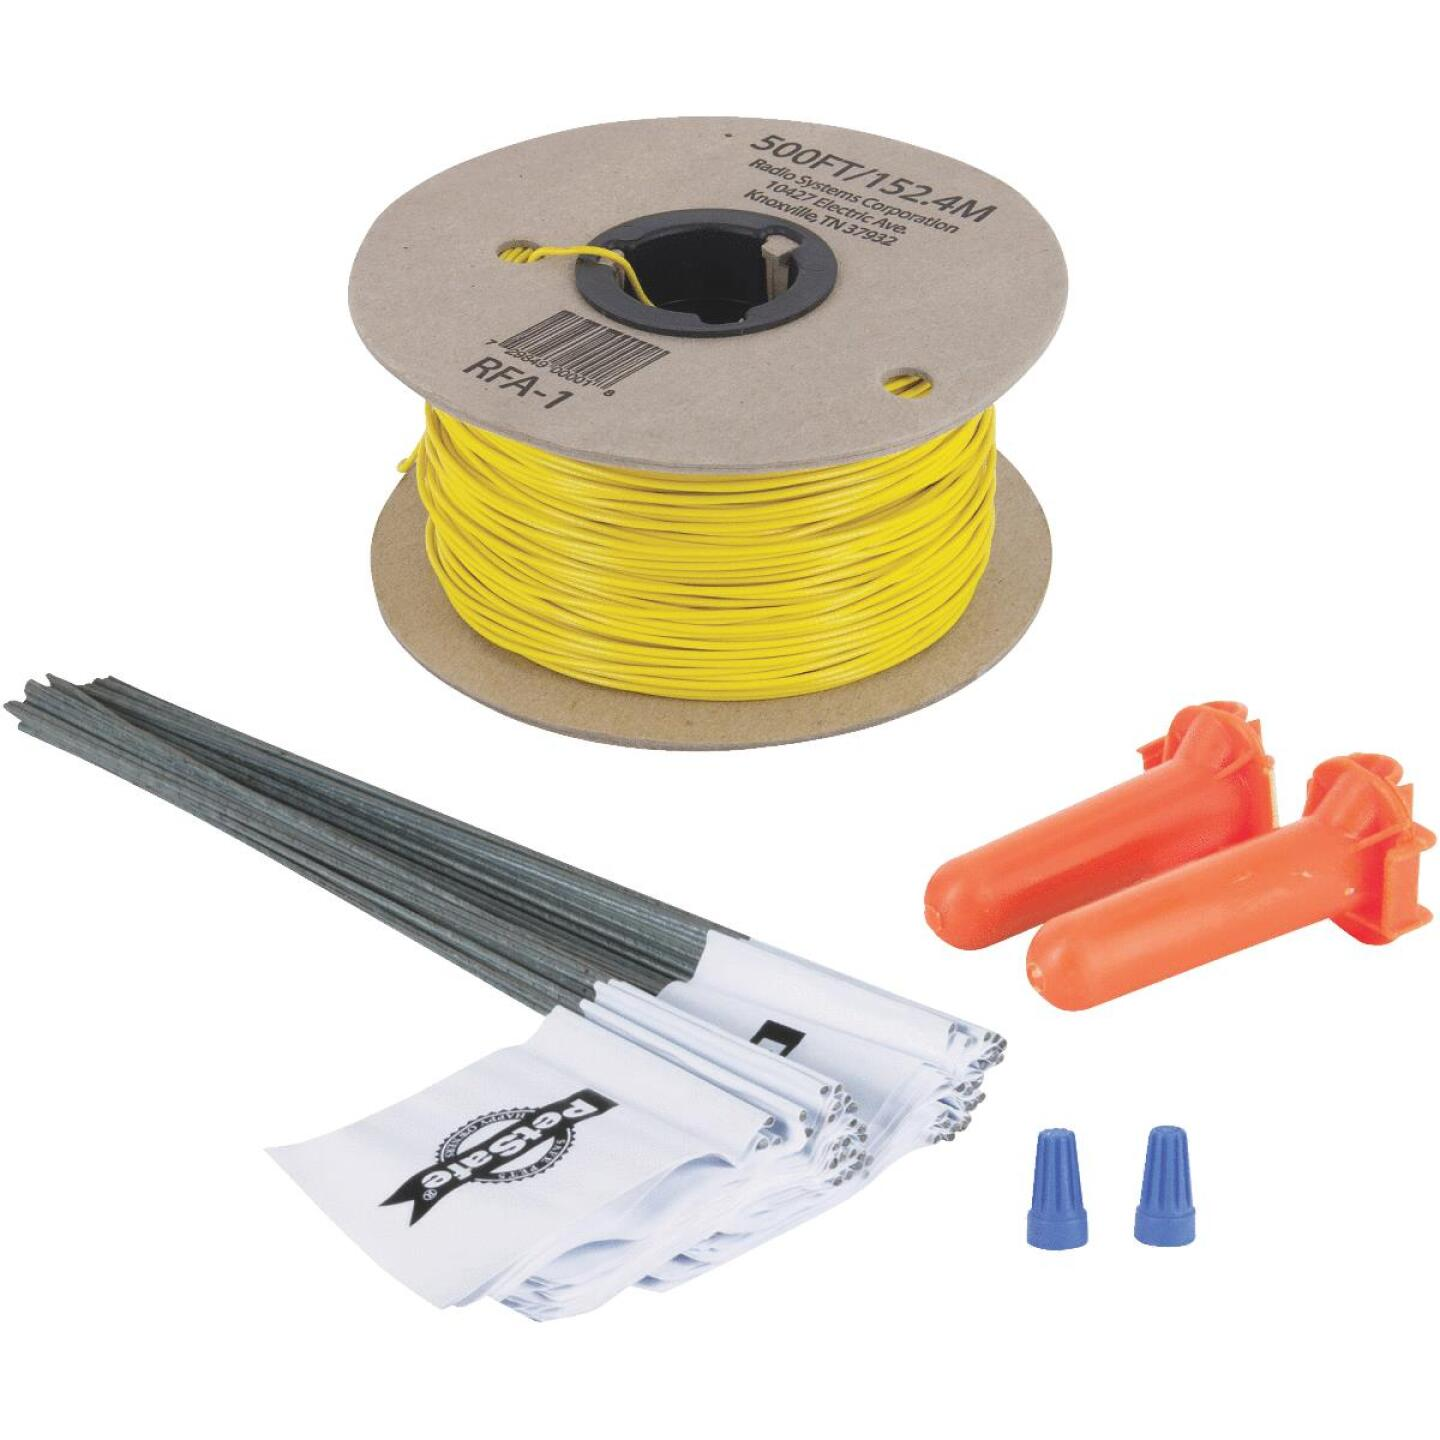 Petsafe 500 Ft. 20 Ga. Copper Wire & 50-Flag In-Ground Fence Expansion Kit Image 1